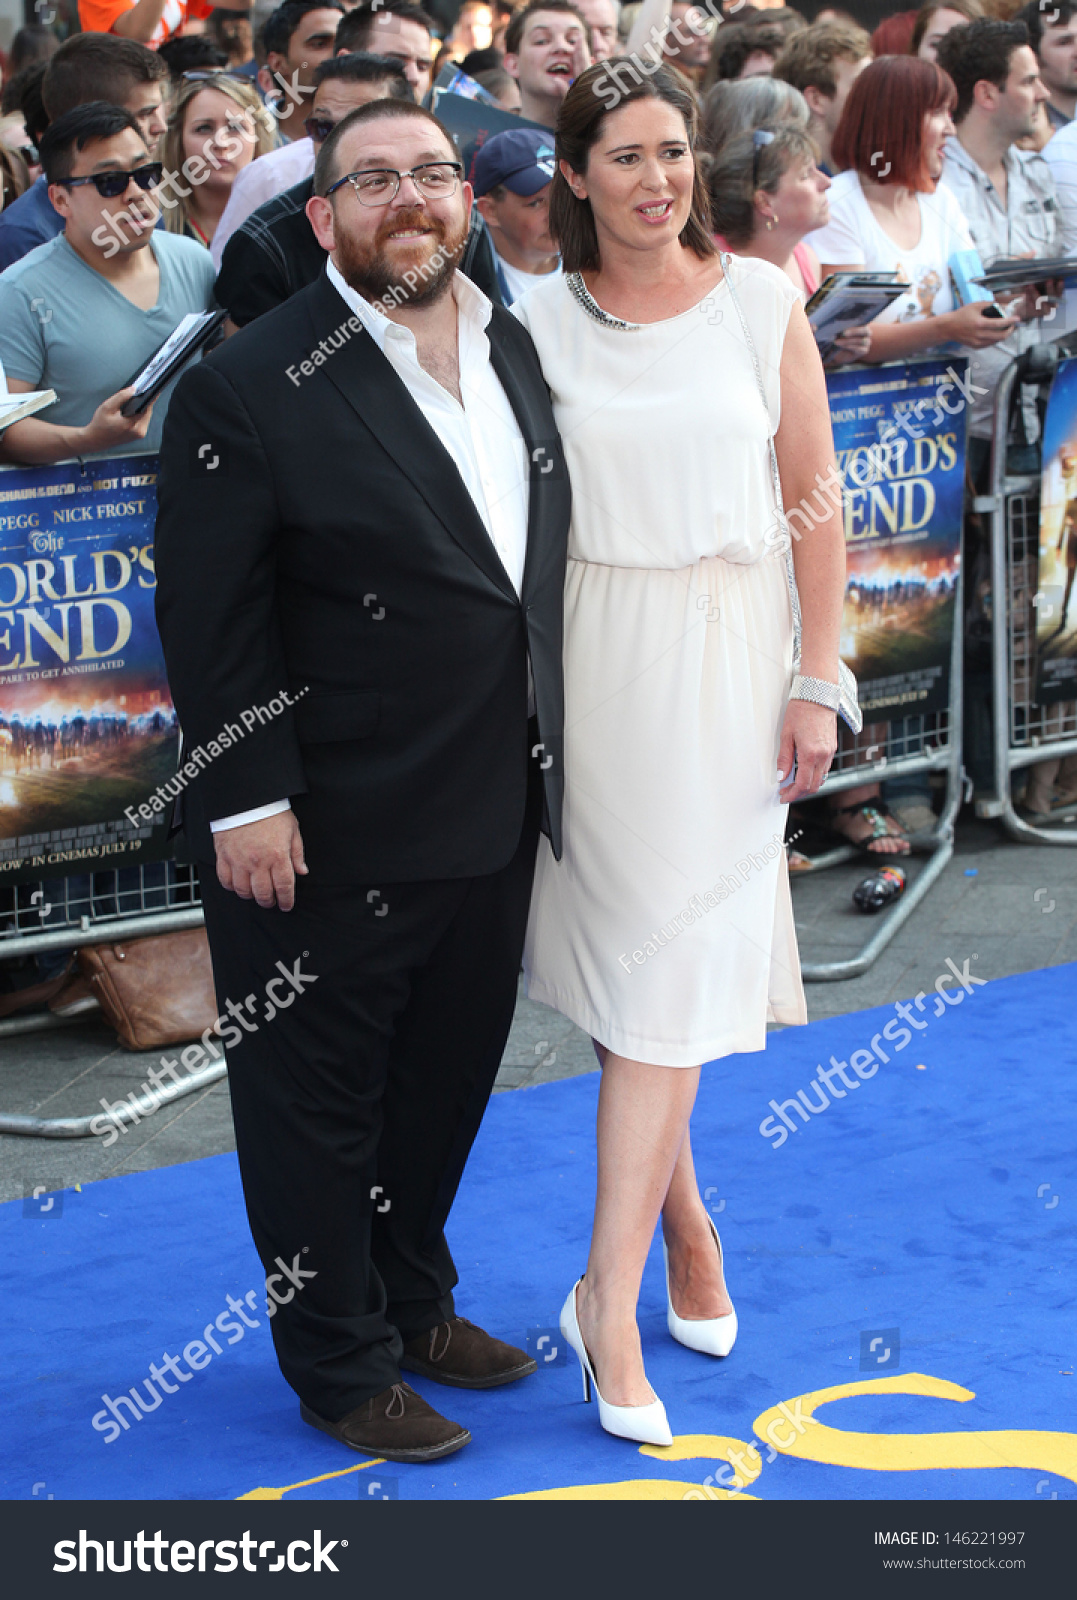 Nick Frost And Wife Christina Arriving For The WorldS EndNick Frost Wife